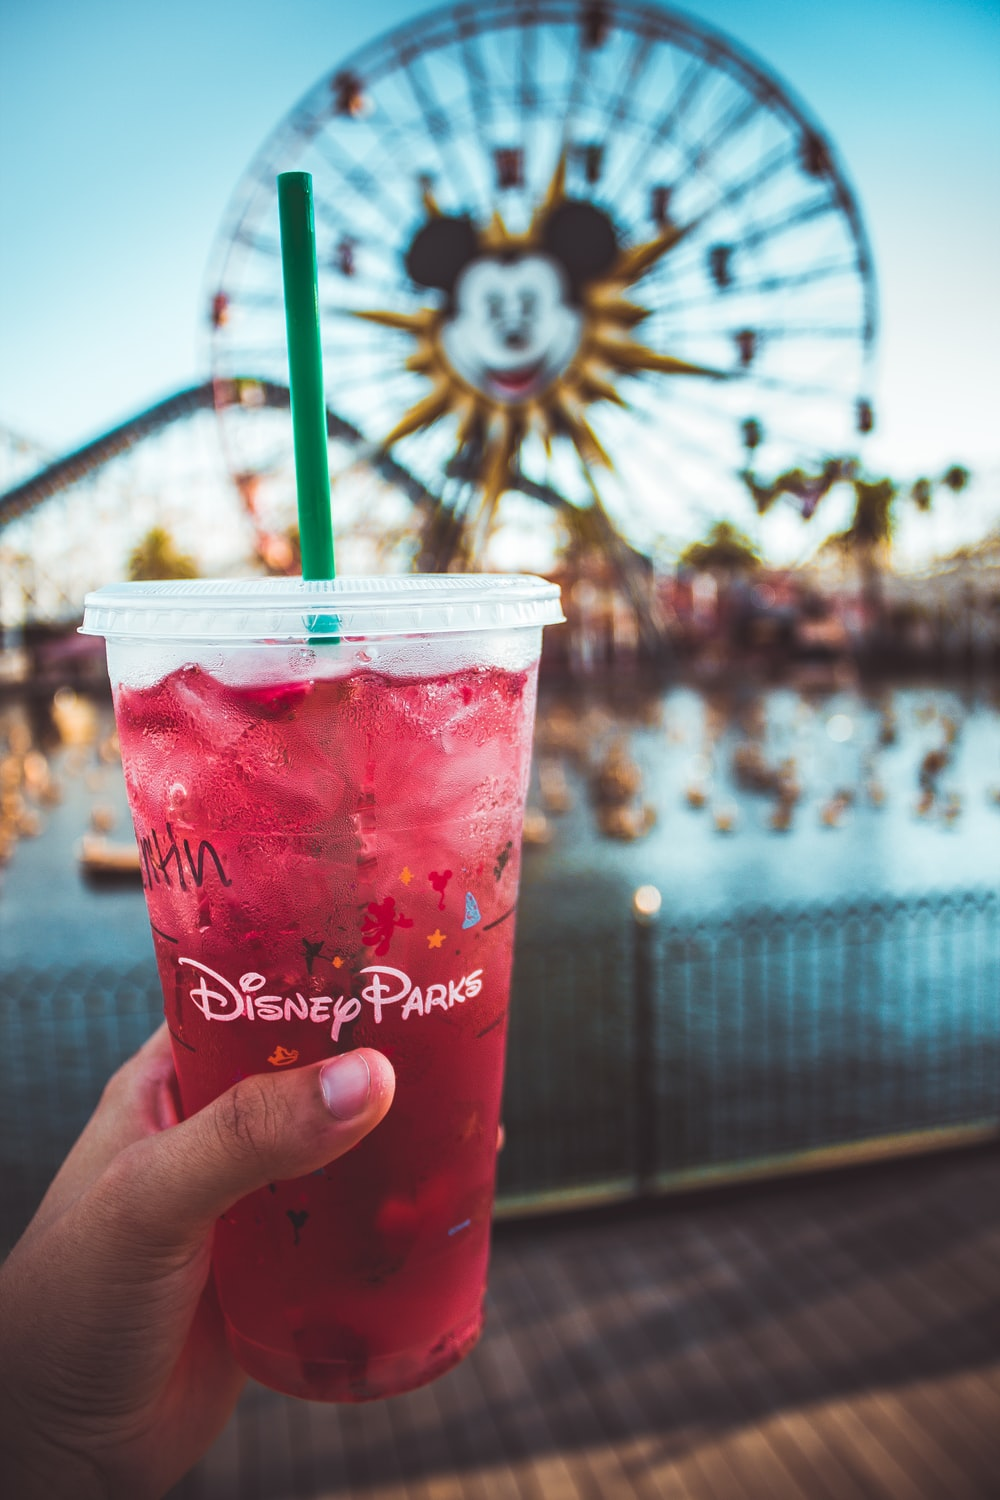 pink Disney Paris drink with green straw